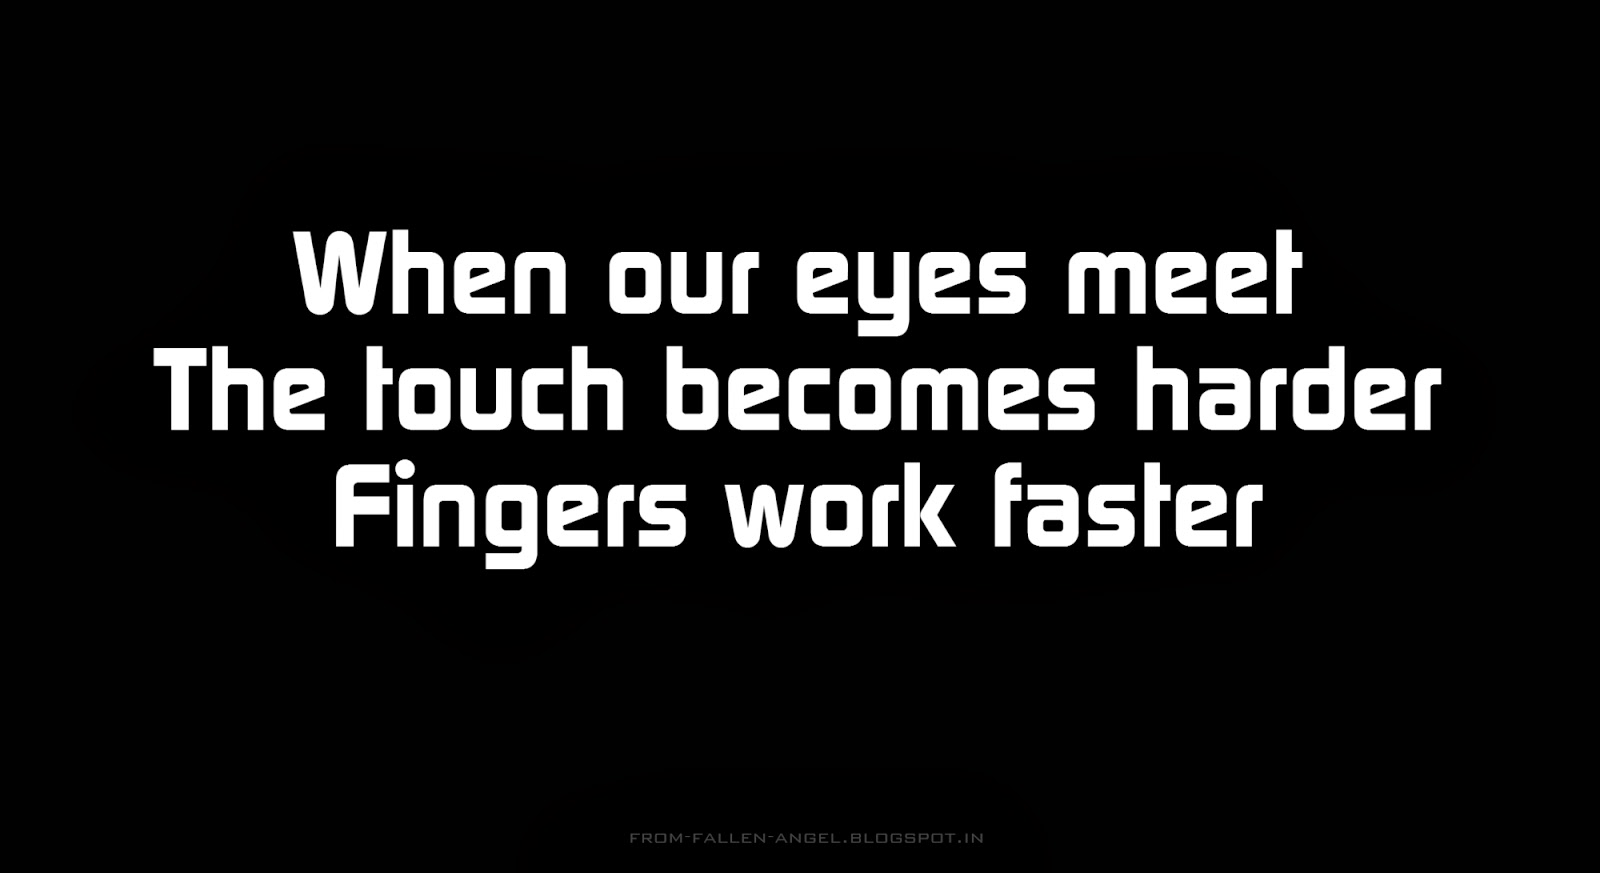 When our eyes meet, The touch becomes harder, fingers work faster